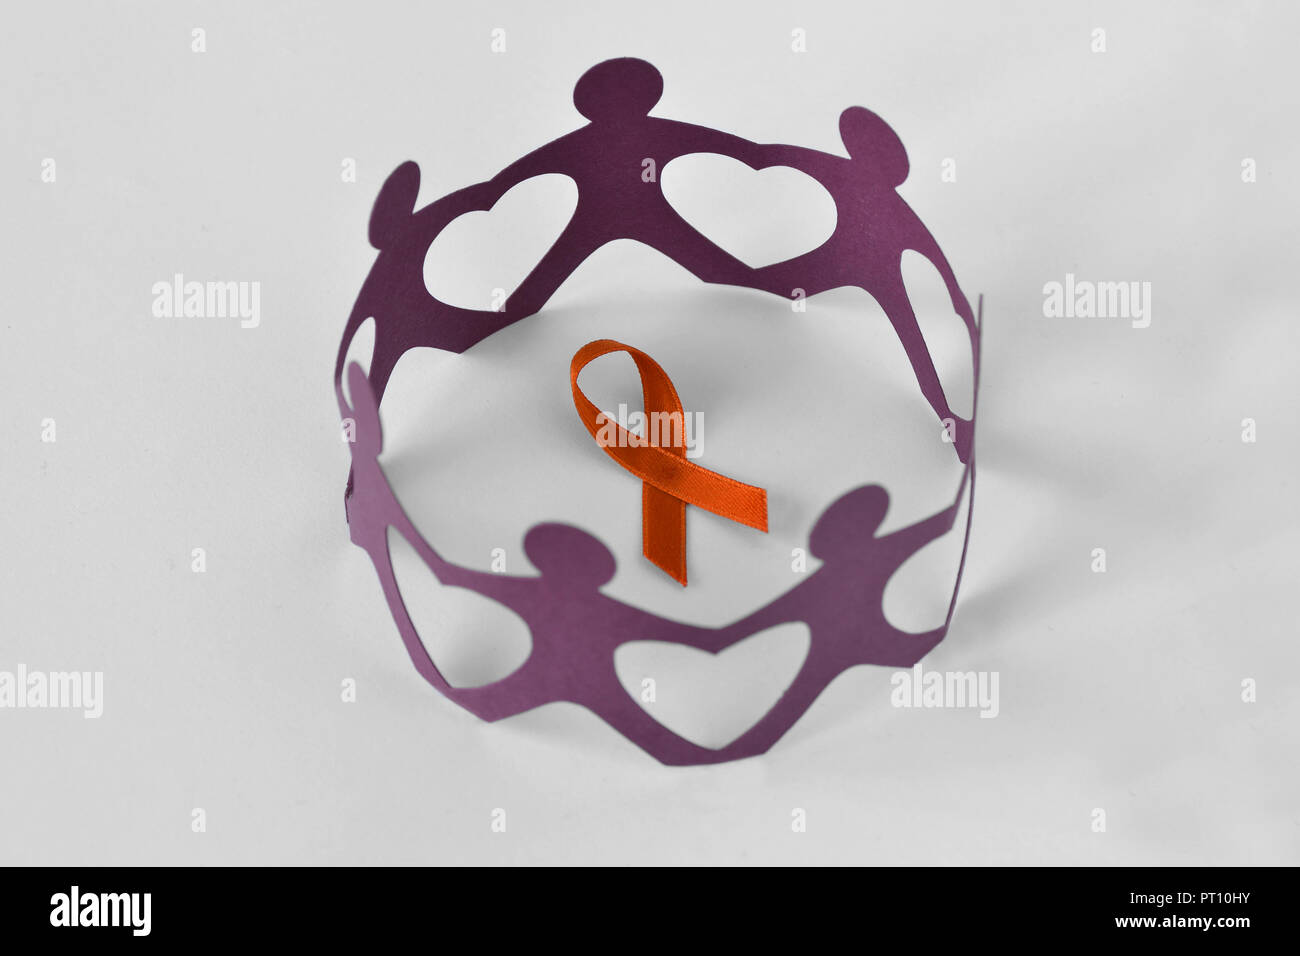 Paper people in a circle around orange ribbon on white background - Concept of leukemia awareness, kidney cancer association, multiple sclerosis and a - Stock Image